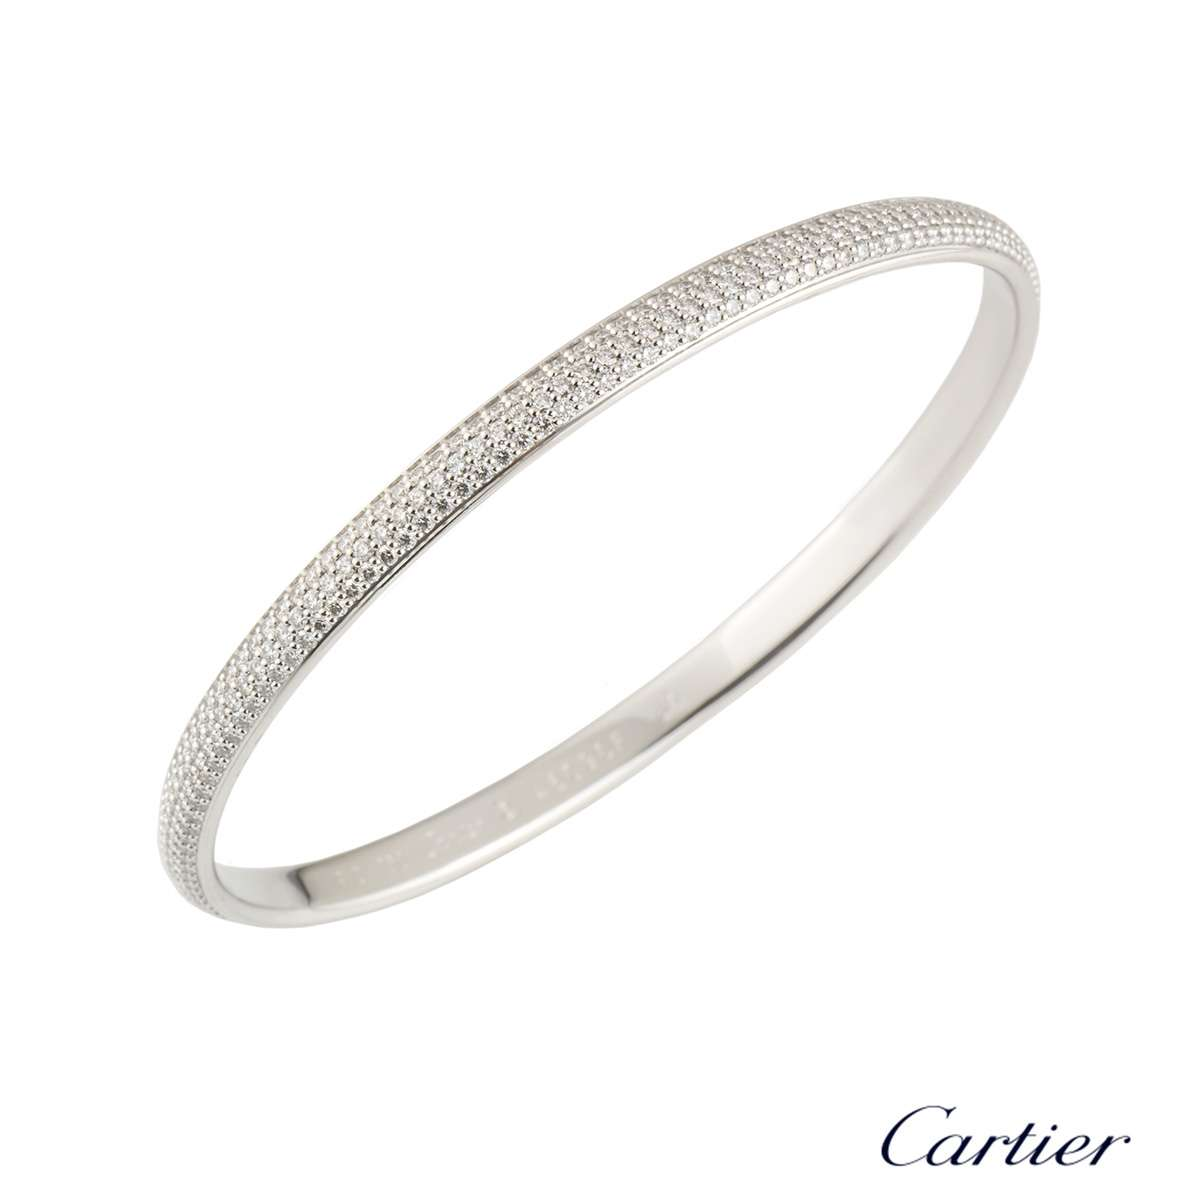 Cartier White Gold Diamond Bangle 4.05ct